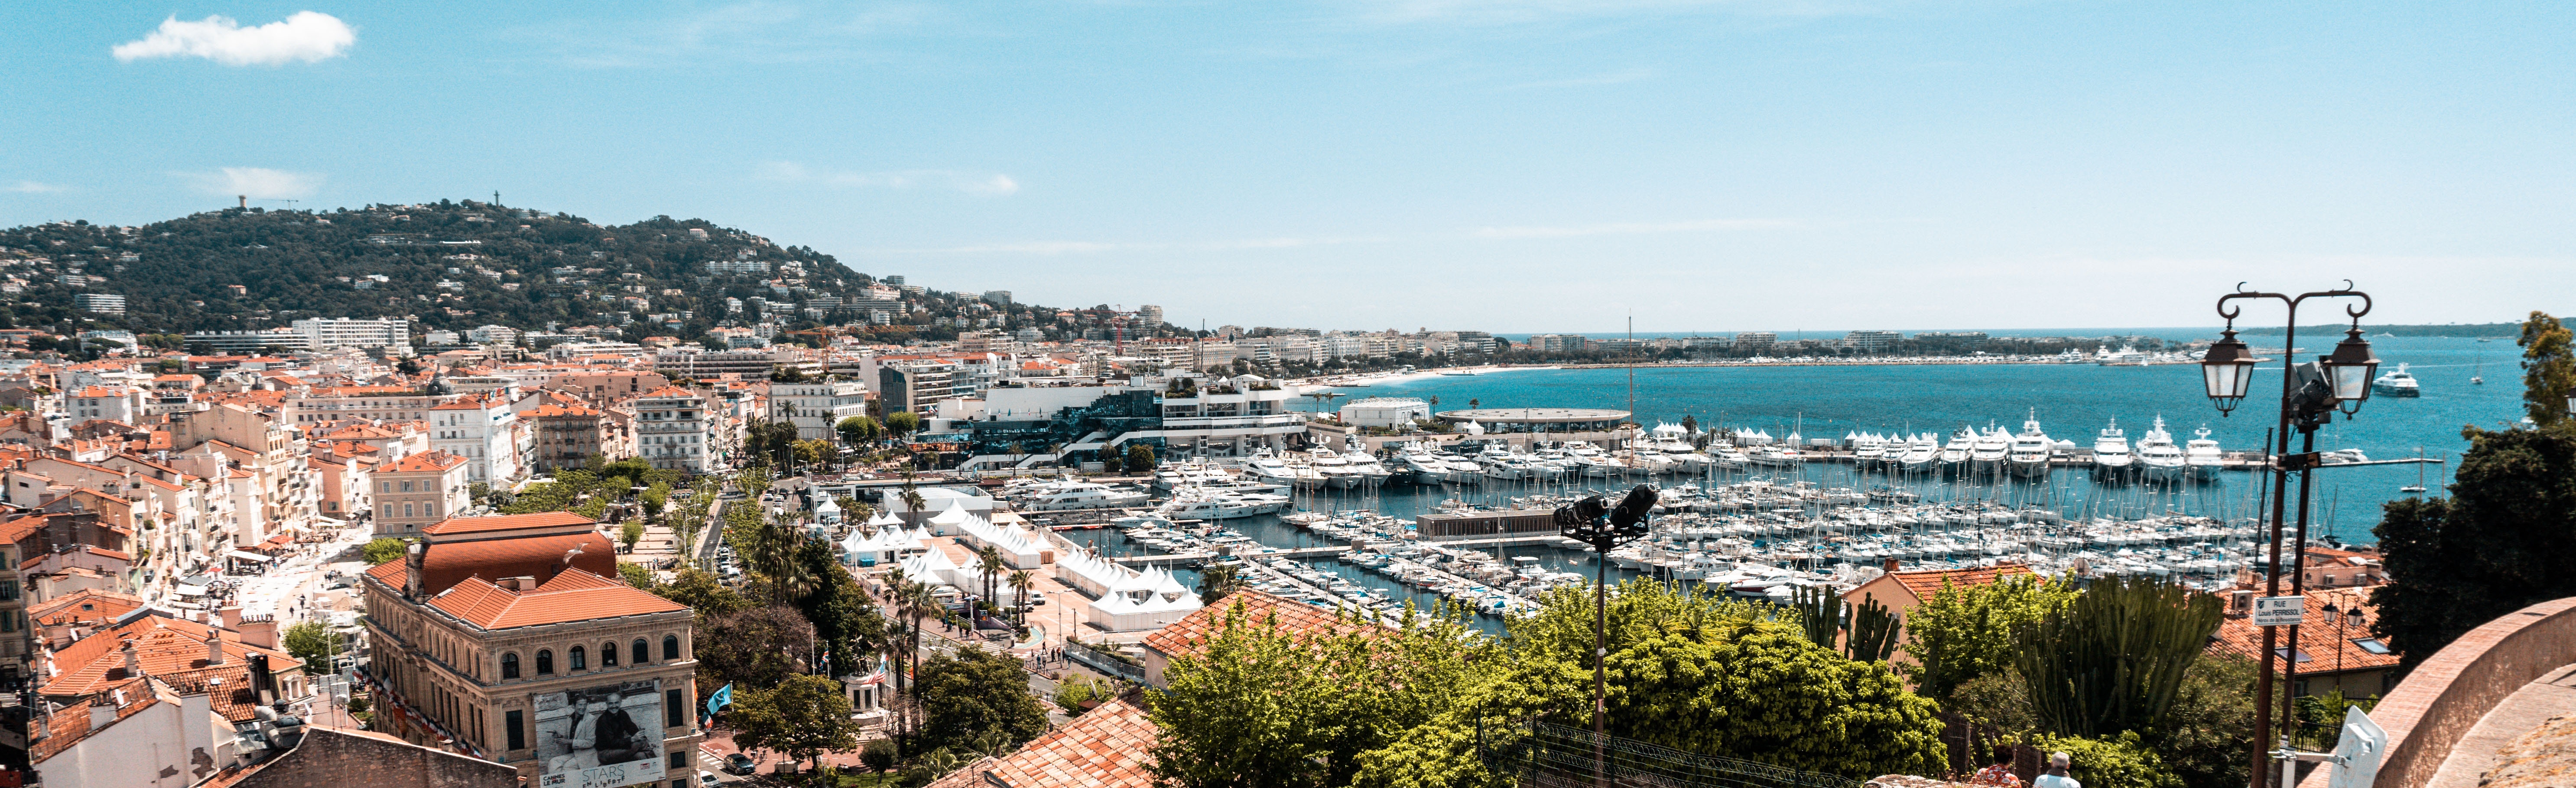 Meet SI Partners in France at the Cannes Lions Festival of Creativity